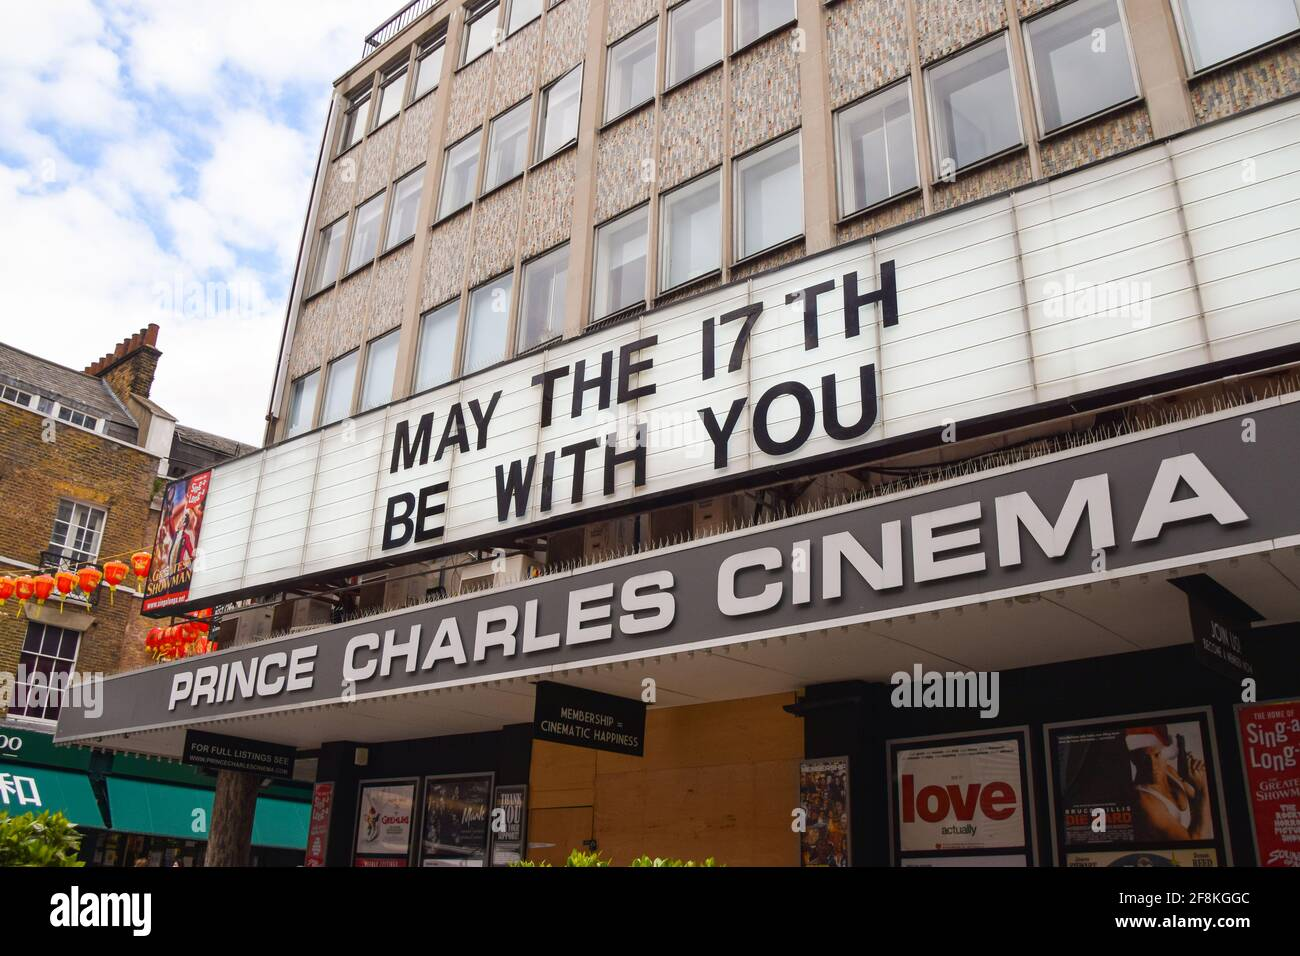 London, United Kingdom. 14th April 2021. 'May The 17th Be With You' on the marquee at Prince Charles Cinema, West End. Cinemas in the UK are due to reopen on 17th May. Stock Photo